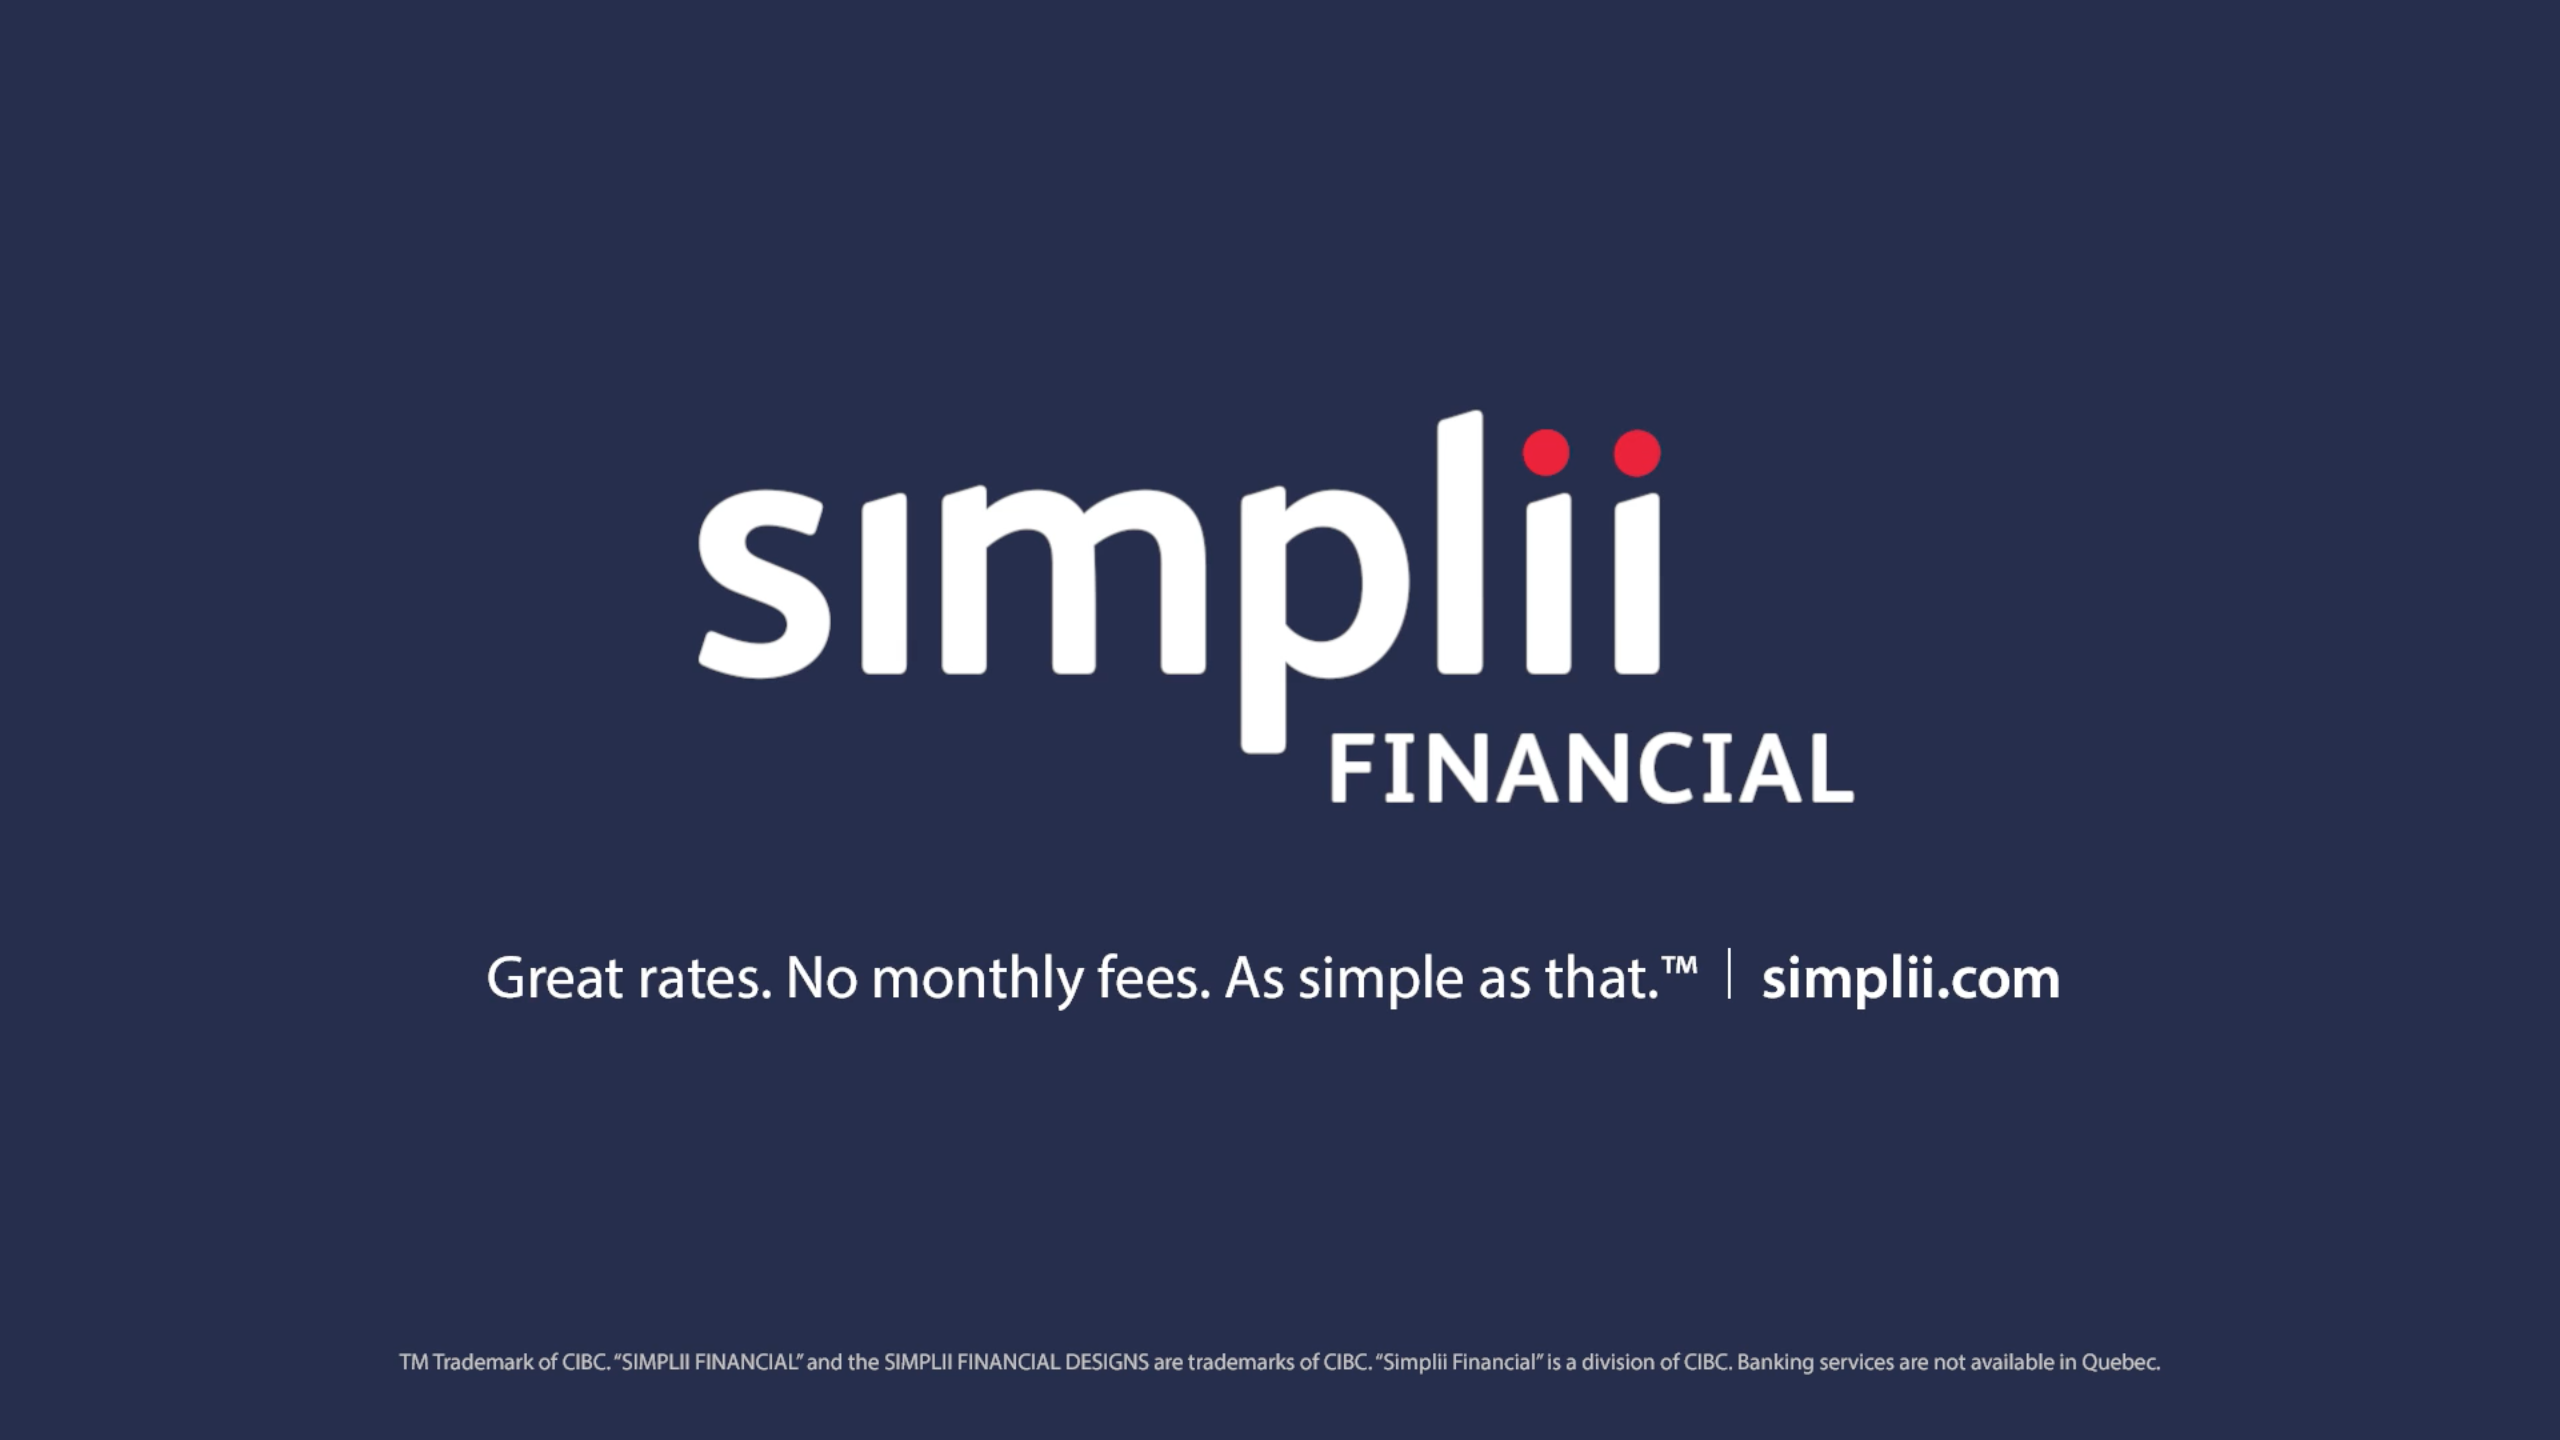 Simplii Financial Launches First-ever Campaign